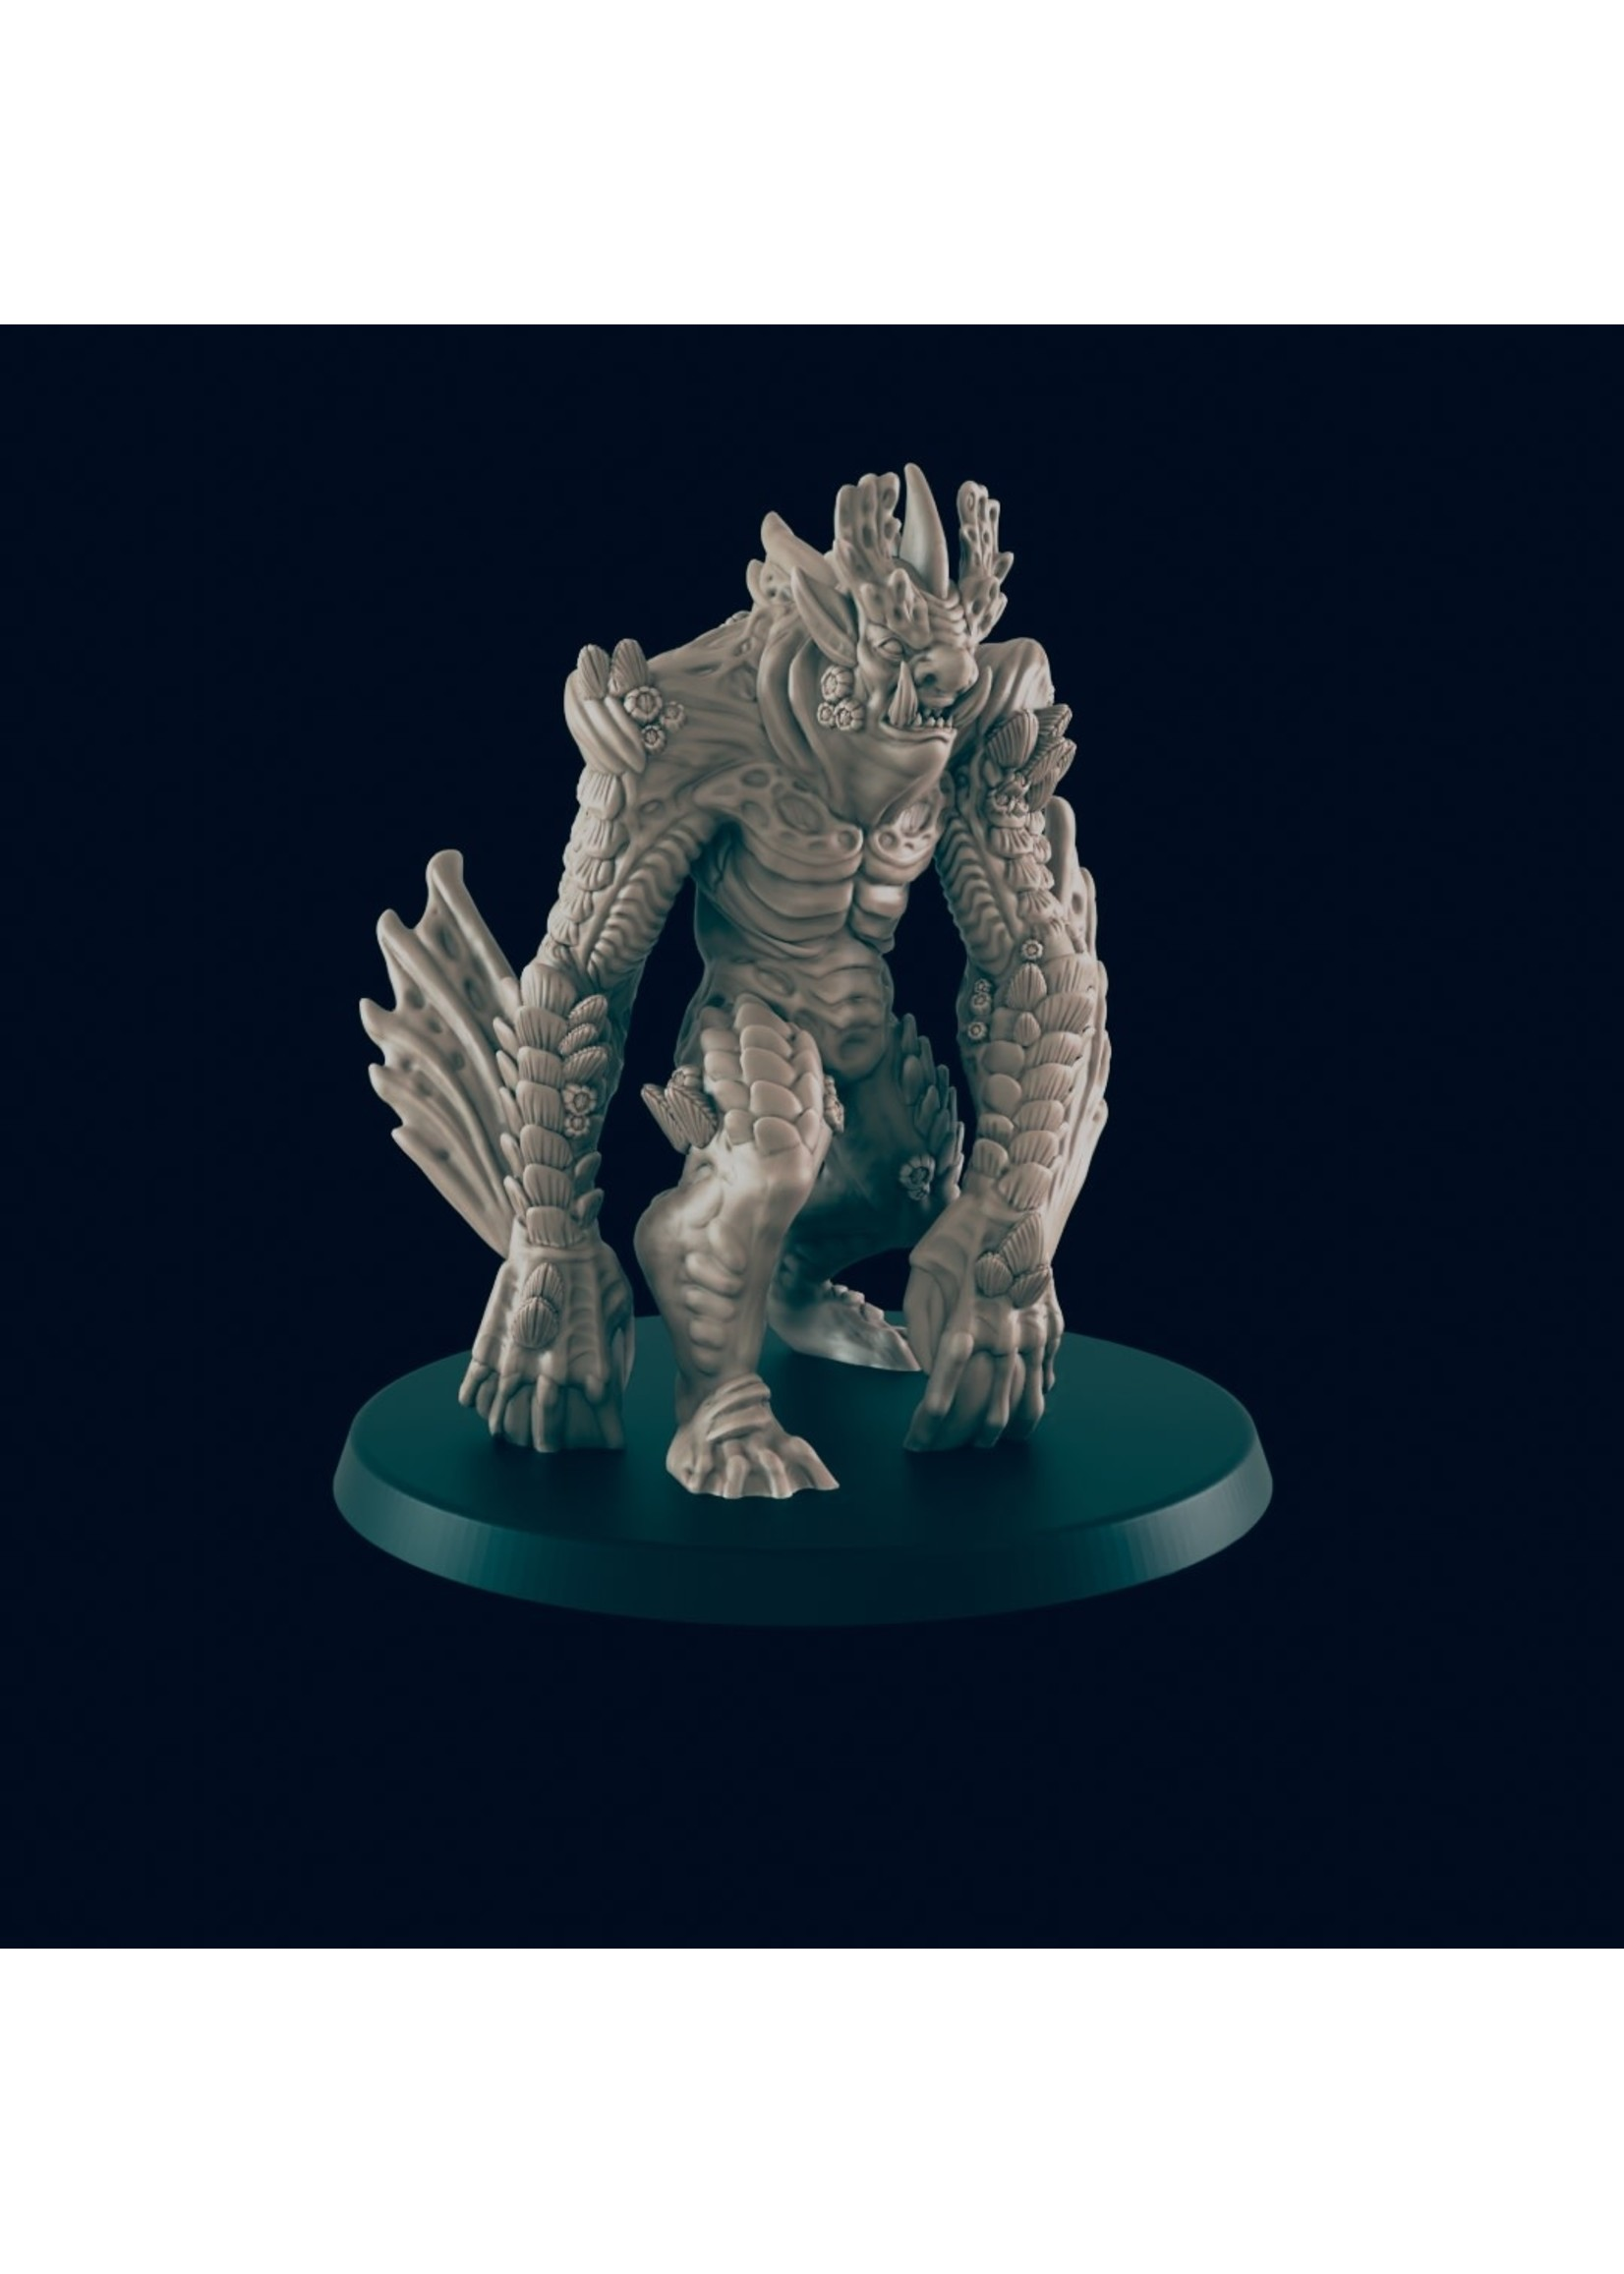 3D Printed Miniature - Sea Troll - Dungeons & Dragons - Beasts and Baddies KS